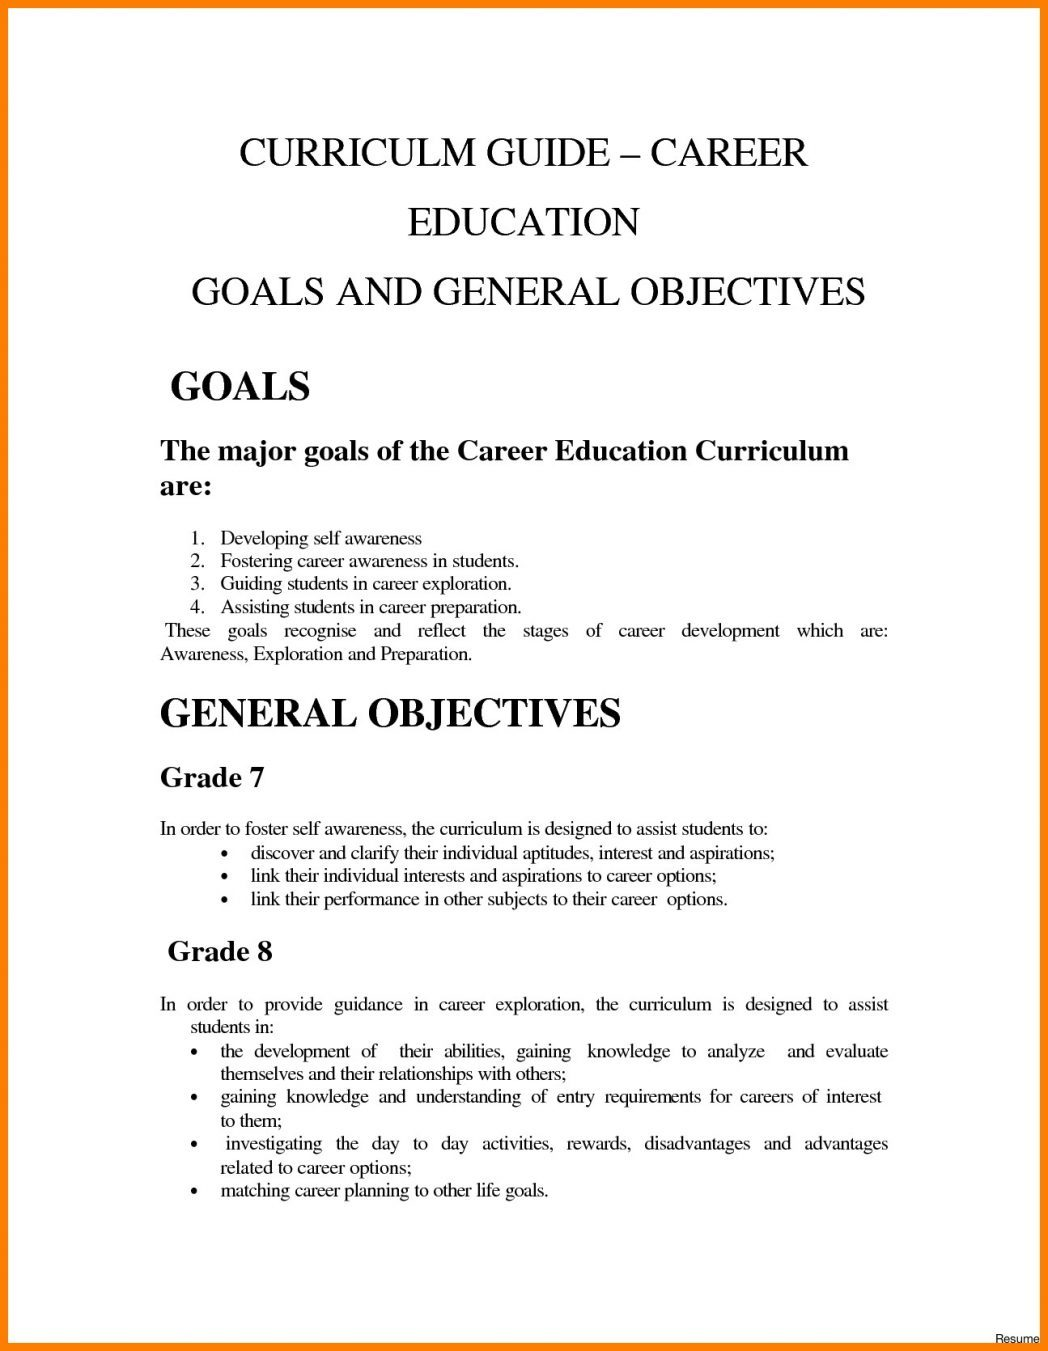 career objective aspirations examples resume best for nurse student organization Resume Career Objective Examples For Resume Nurse